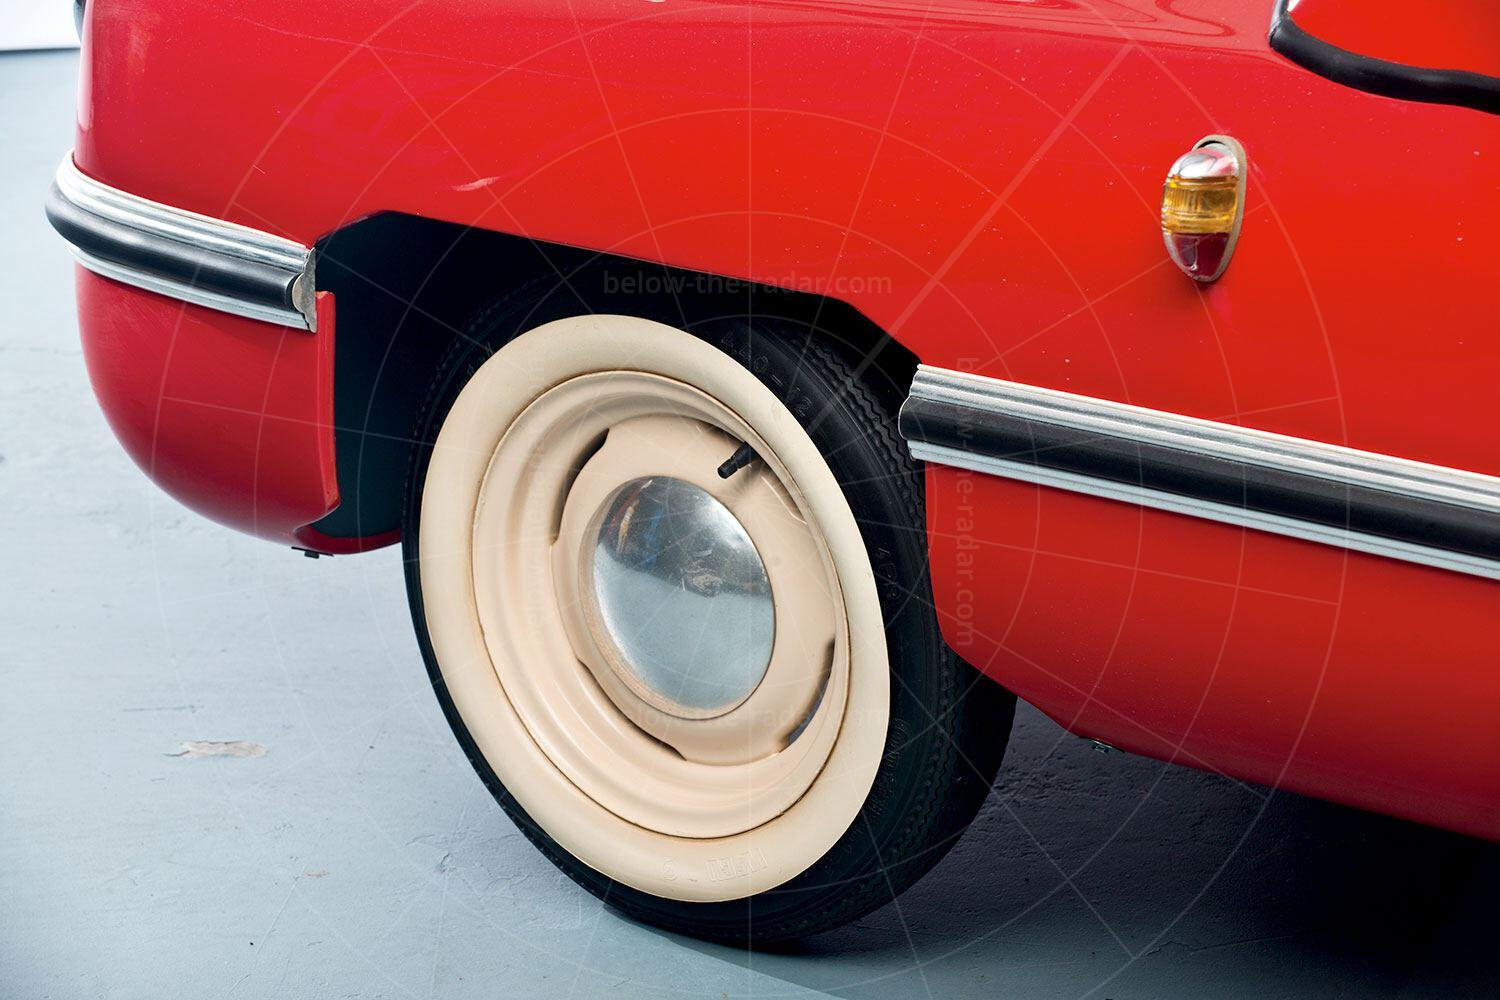 Victoria 250 front wheel Pic: RM Sotheby's | Victoria 250 front wheel